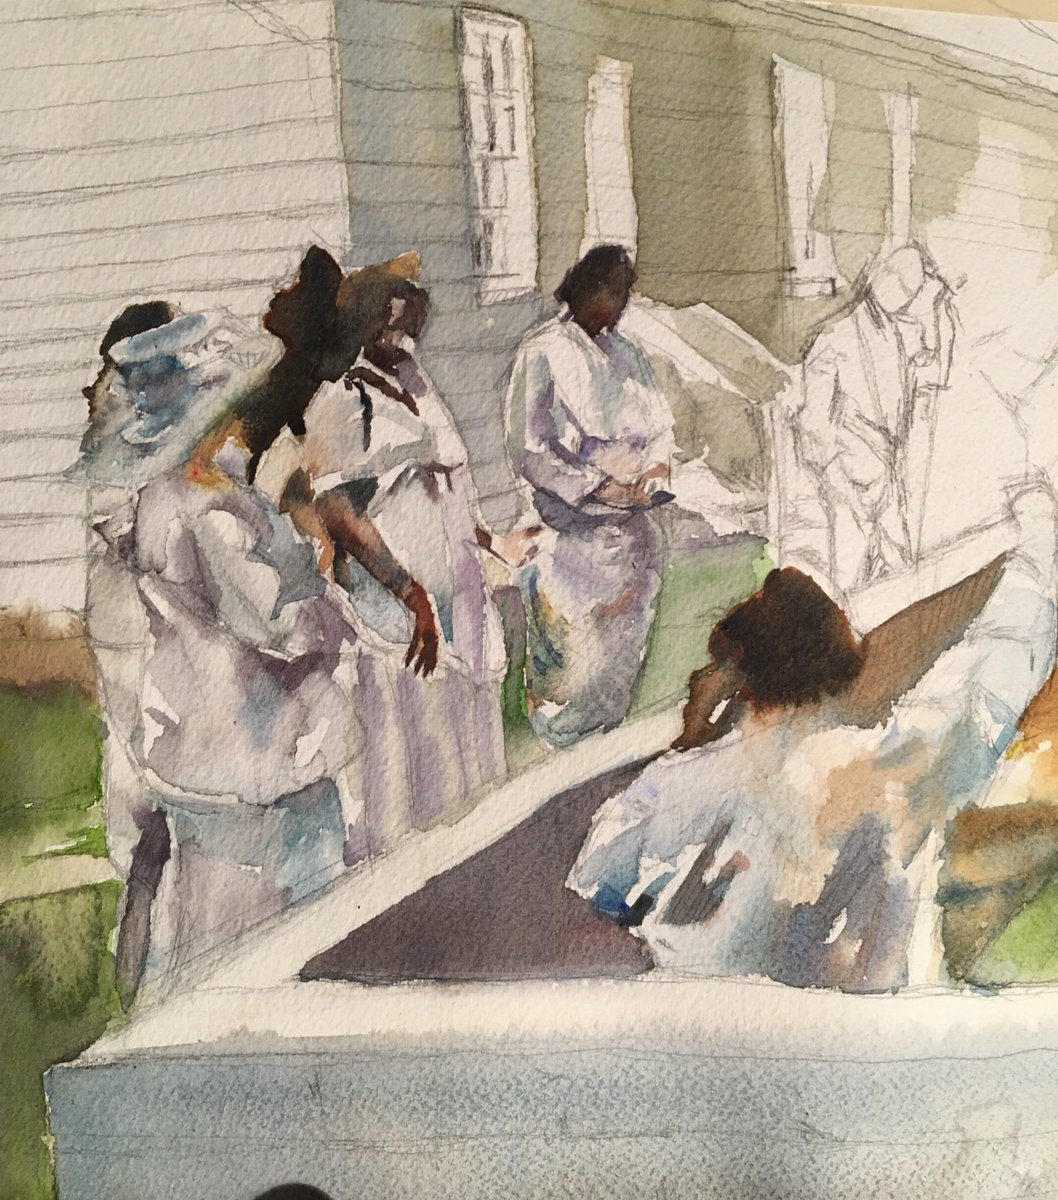 Started another baptism scene today